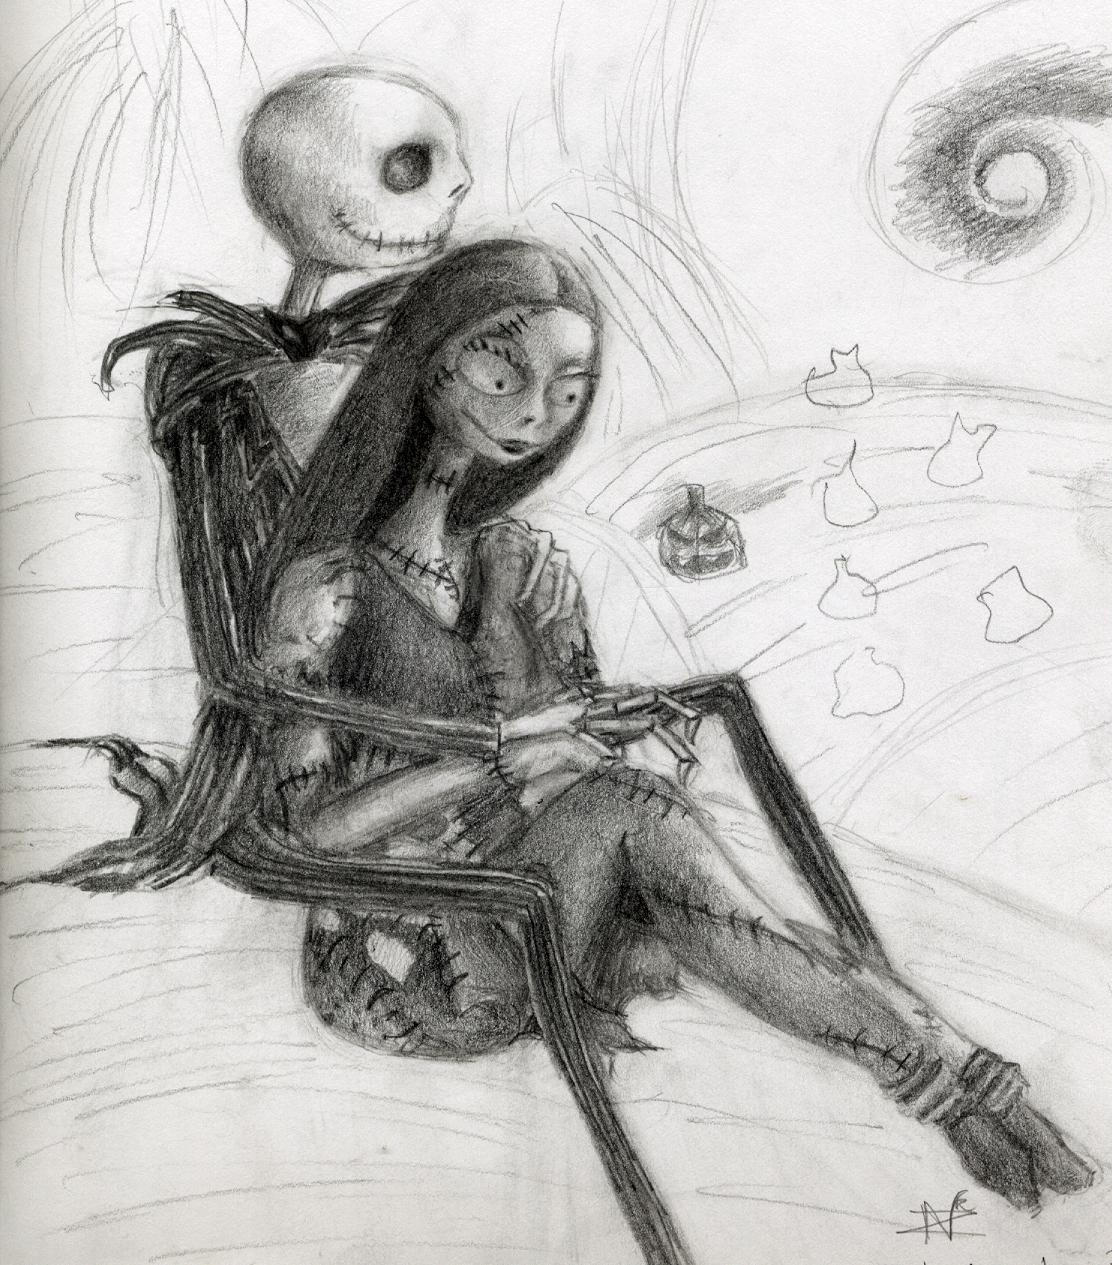 Jack and Sally by Aliquis01L on DeviantArt